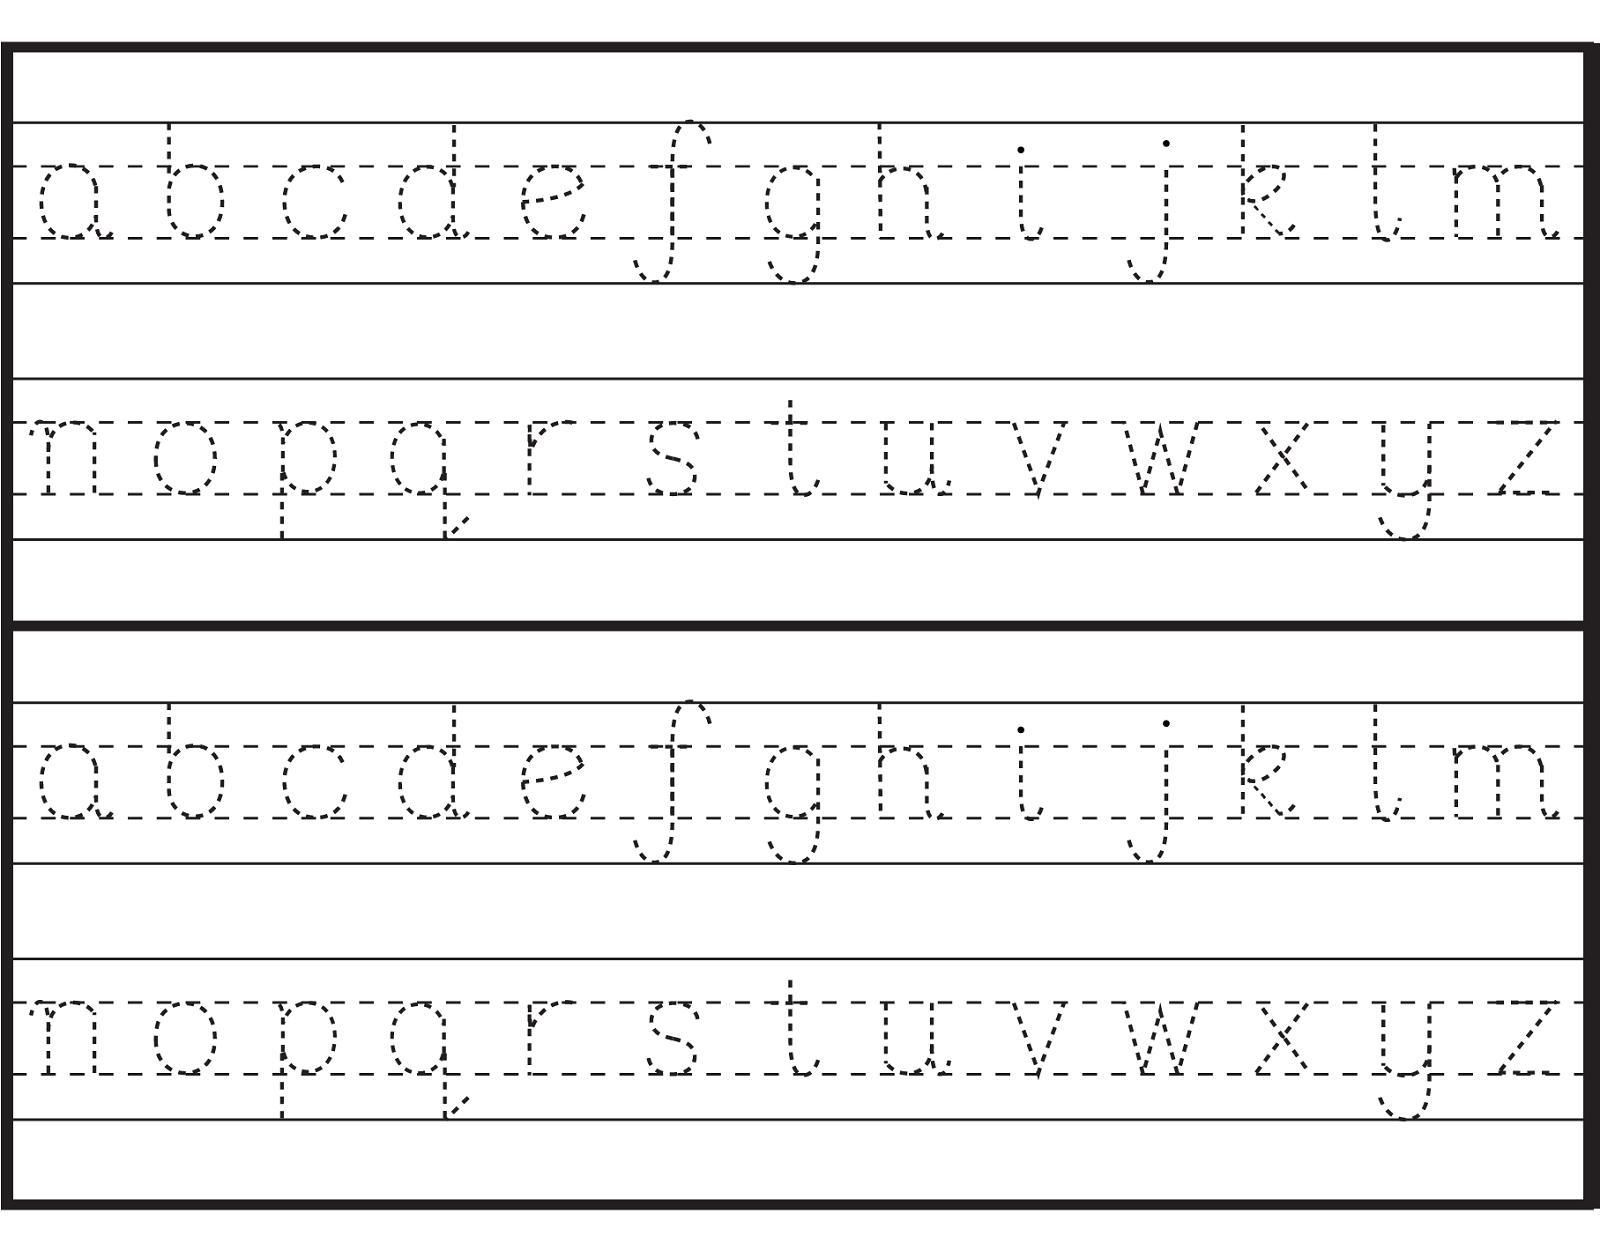 51 Traceable Alphabet Worksheets In